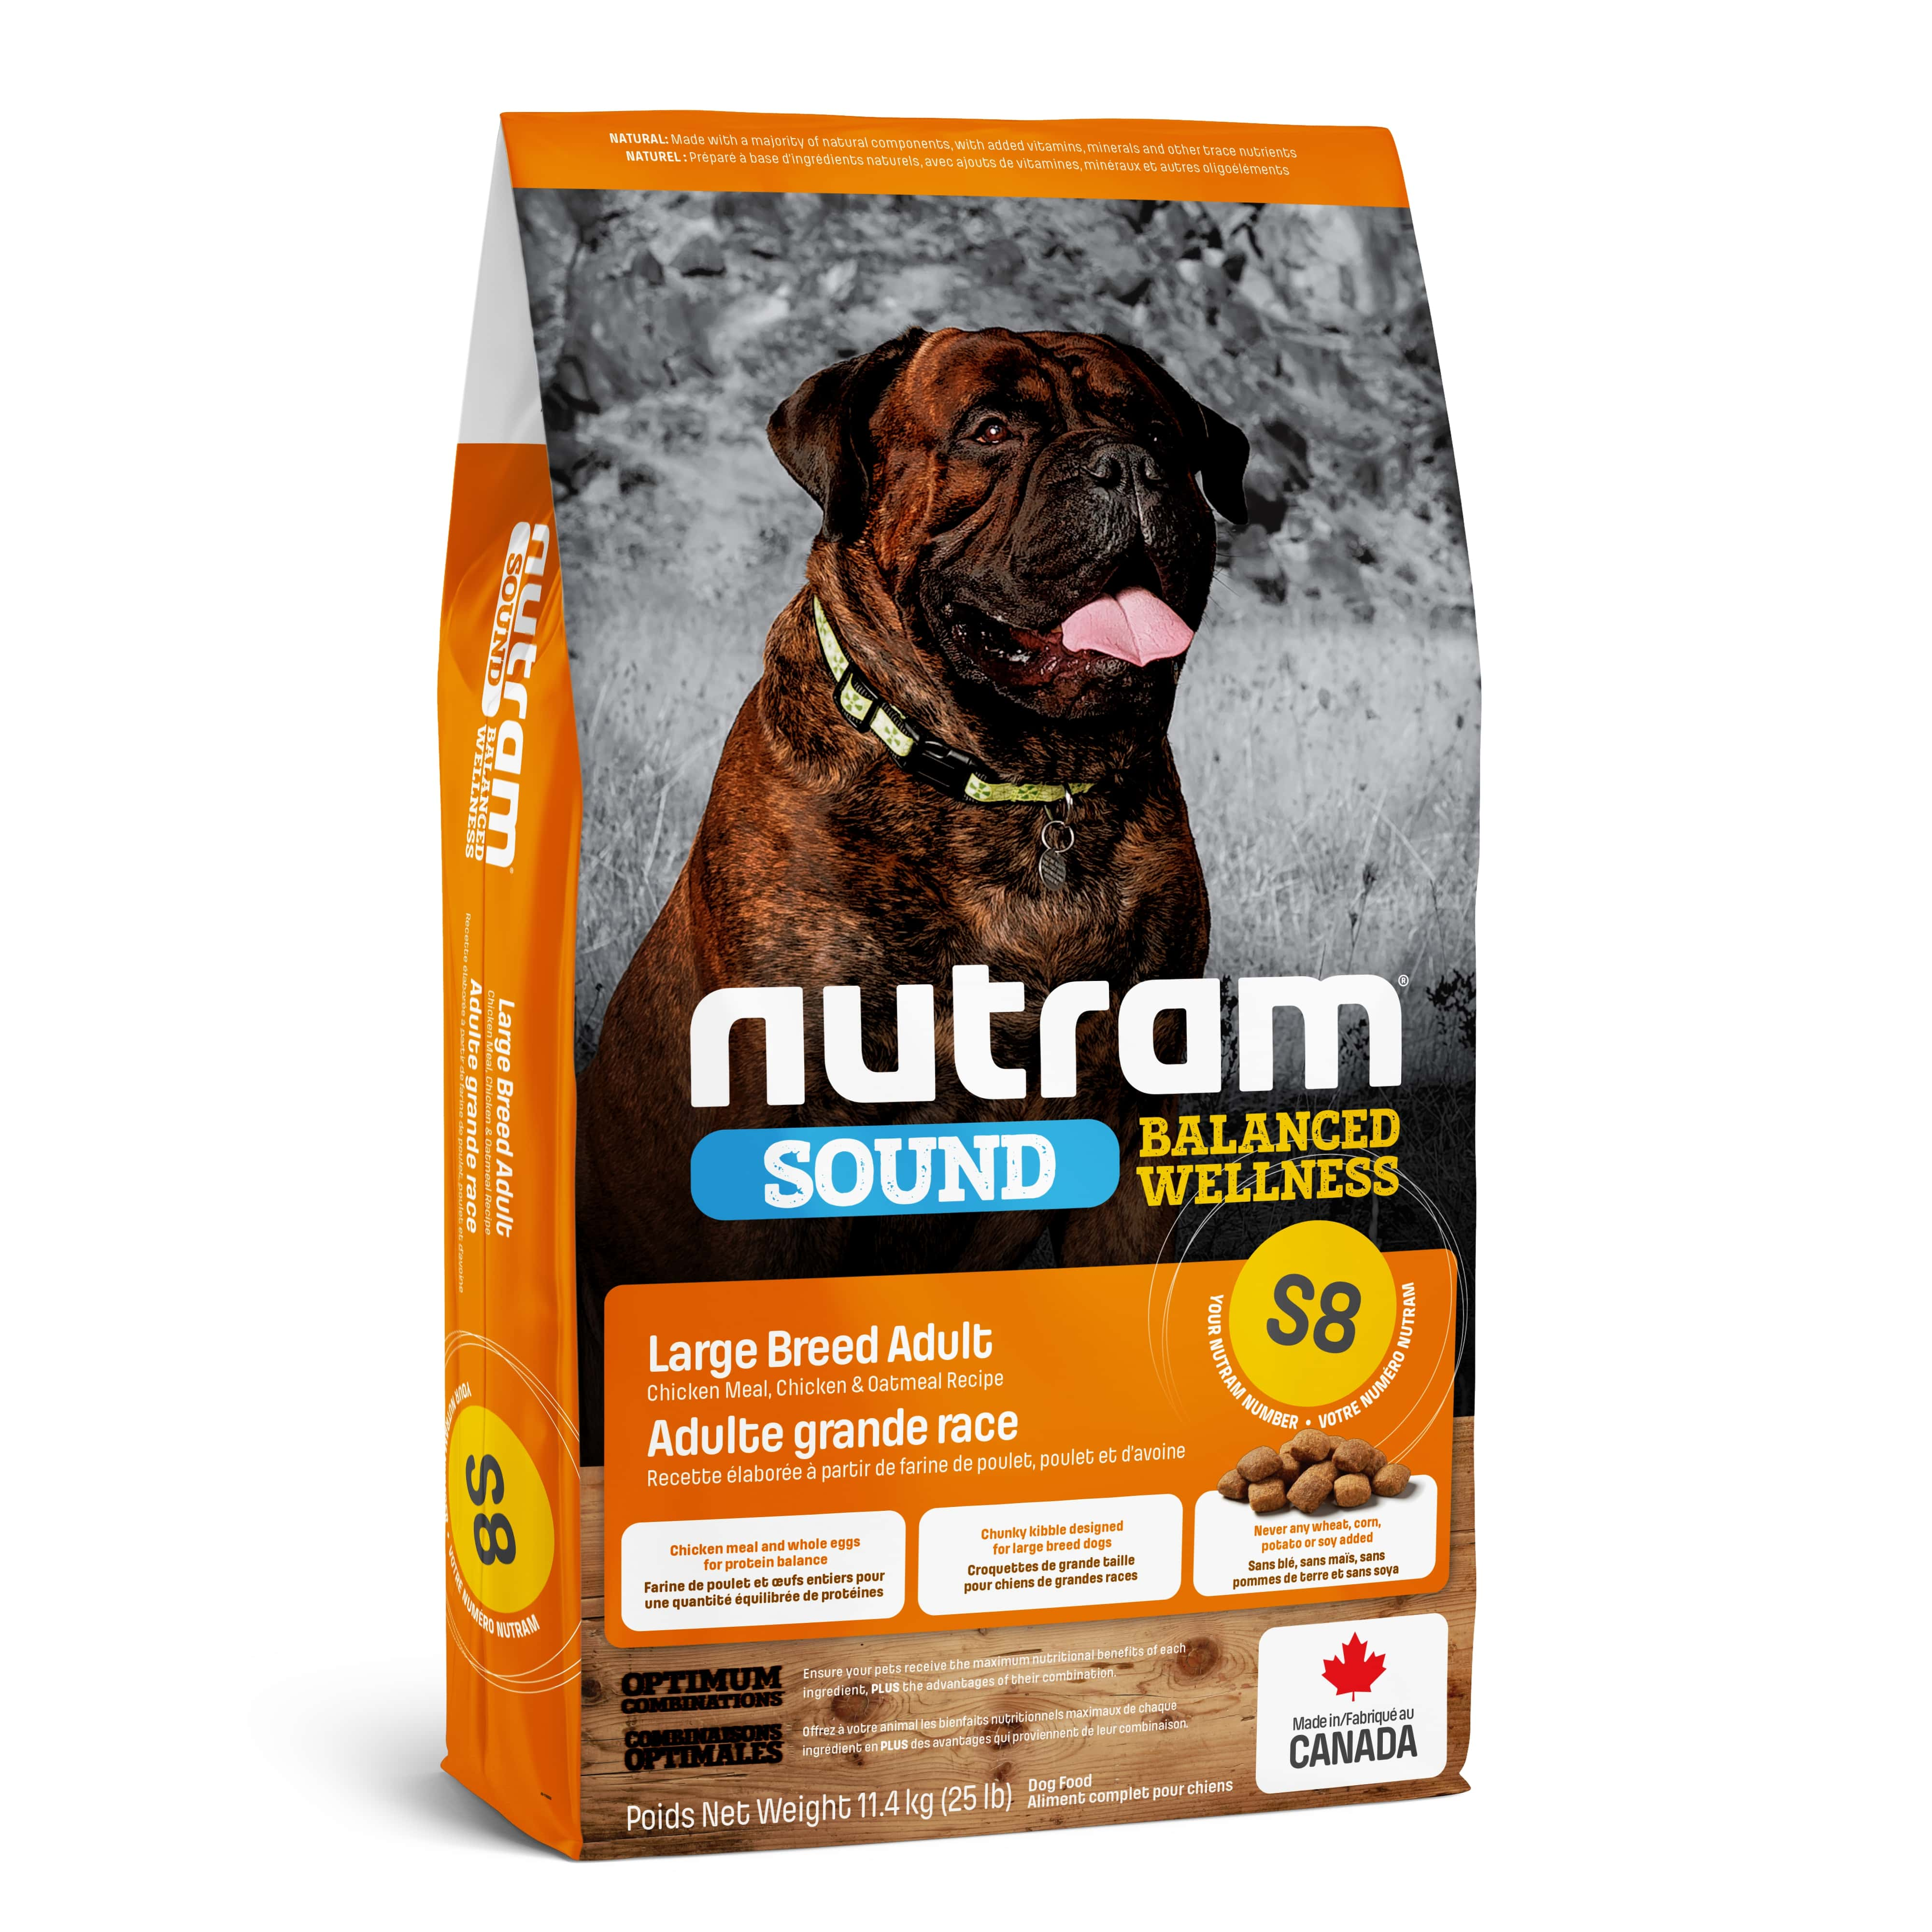 S8 Nutram Sound Balanced Wellness® Large Breed Adult Dog Food